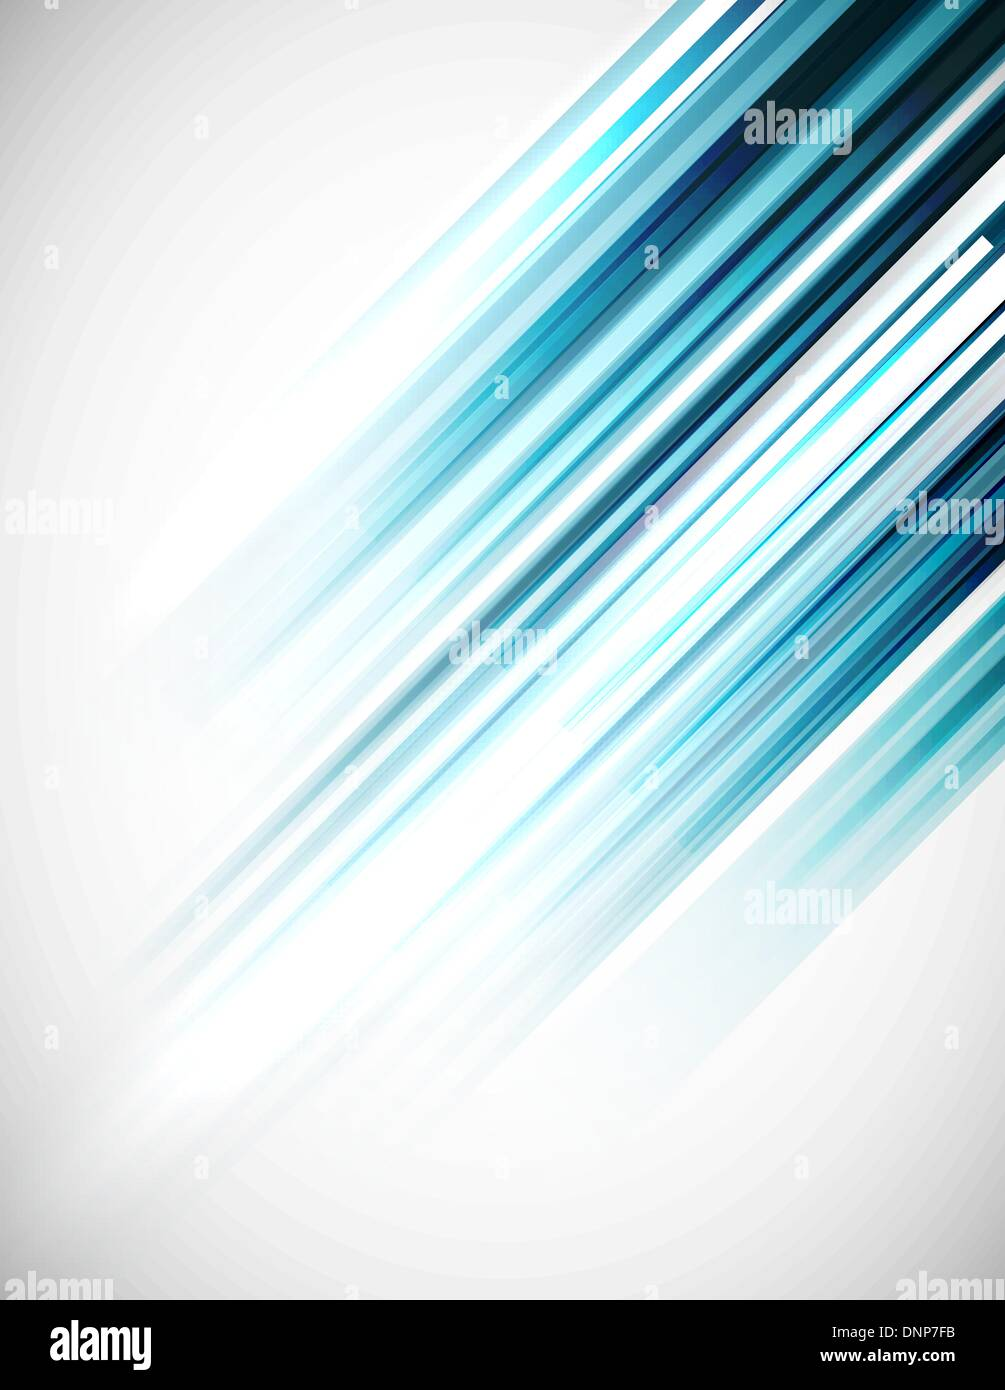 Blue abstract straight lines vector background - Stock Image